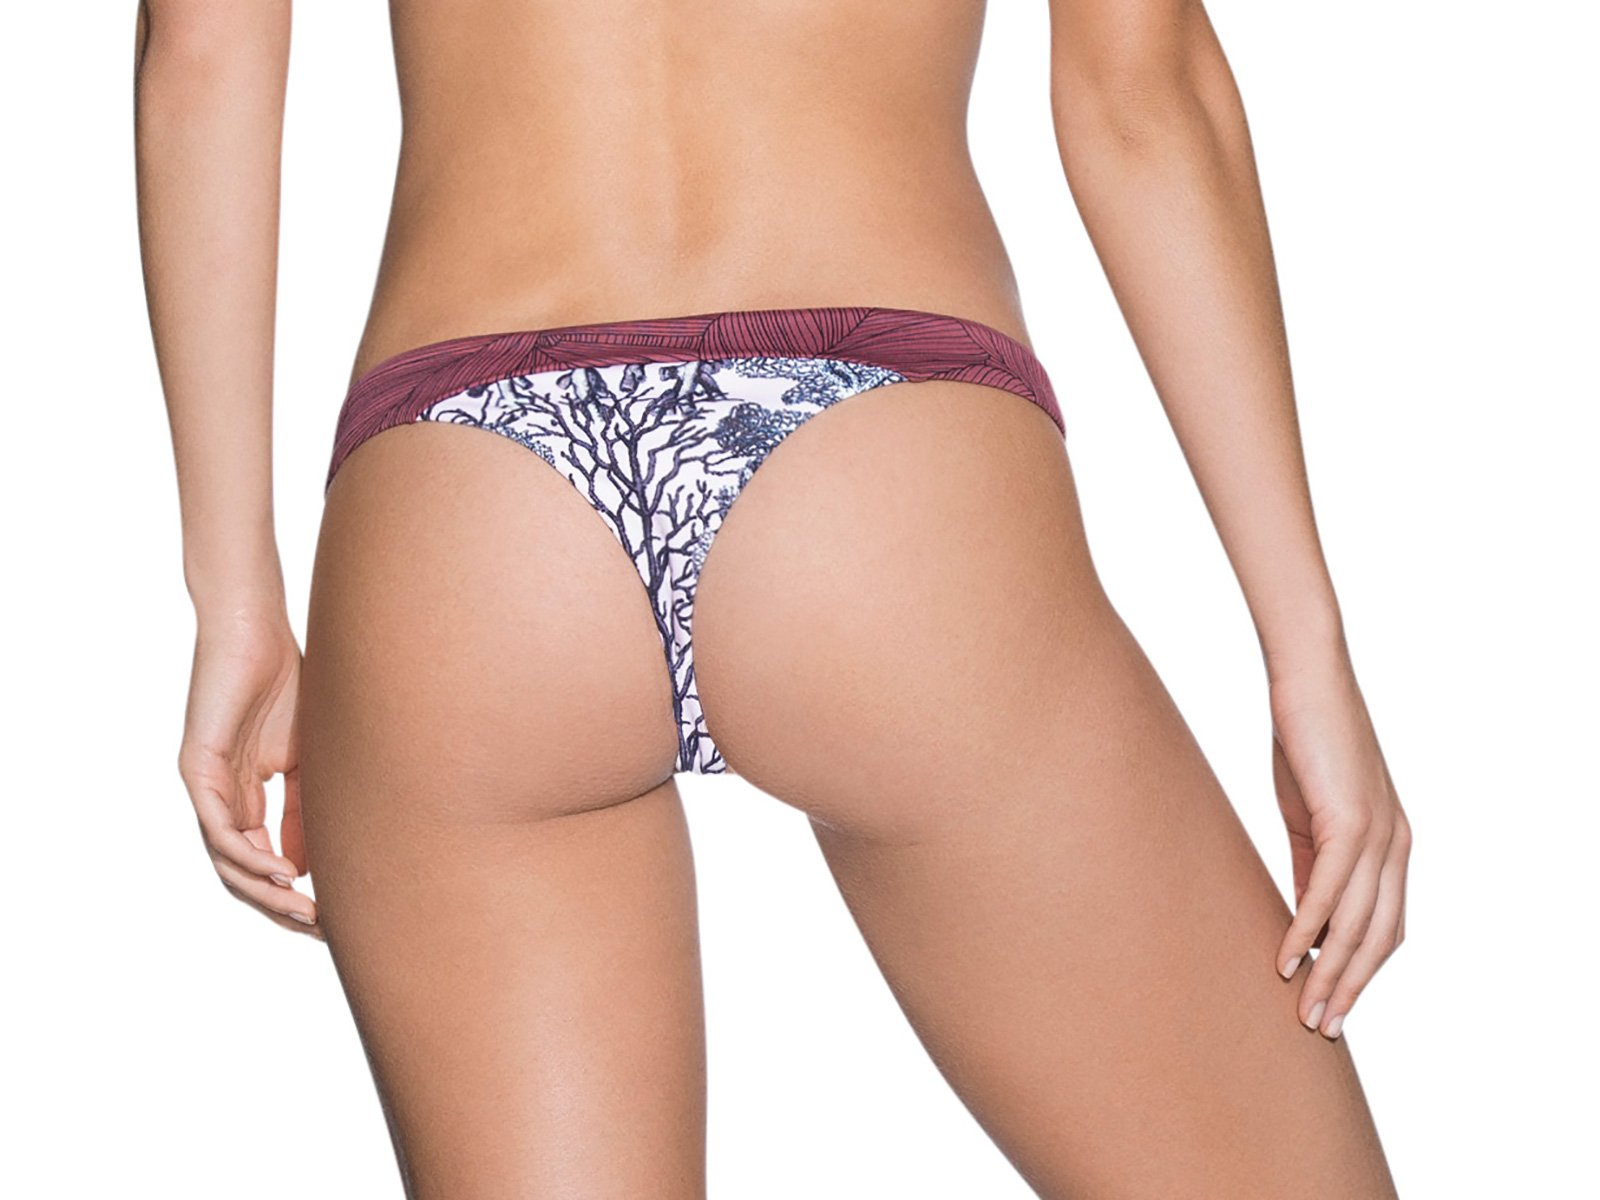 e345c57e59 Swimsuit Thong In A Mixed Floral Print - Bottom Cumbia Society - Maaji